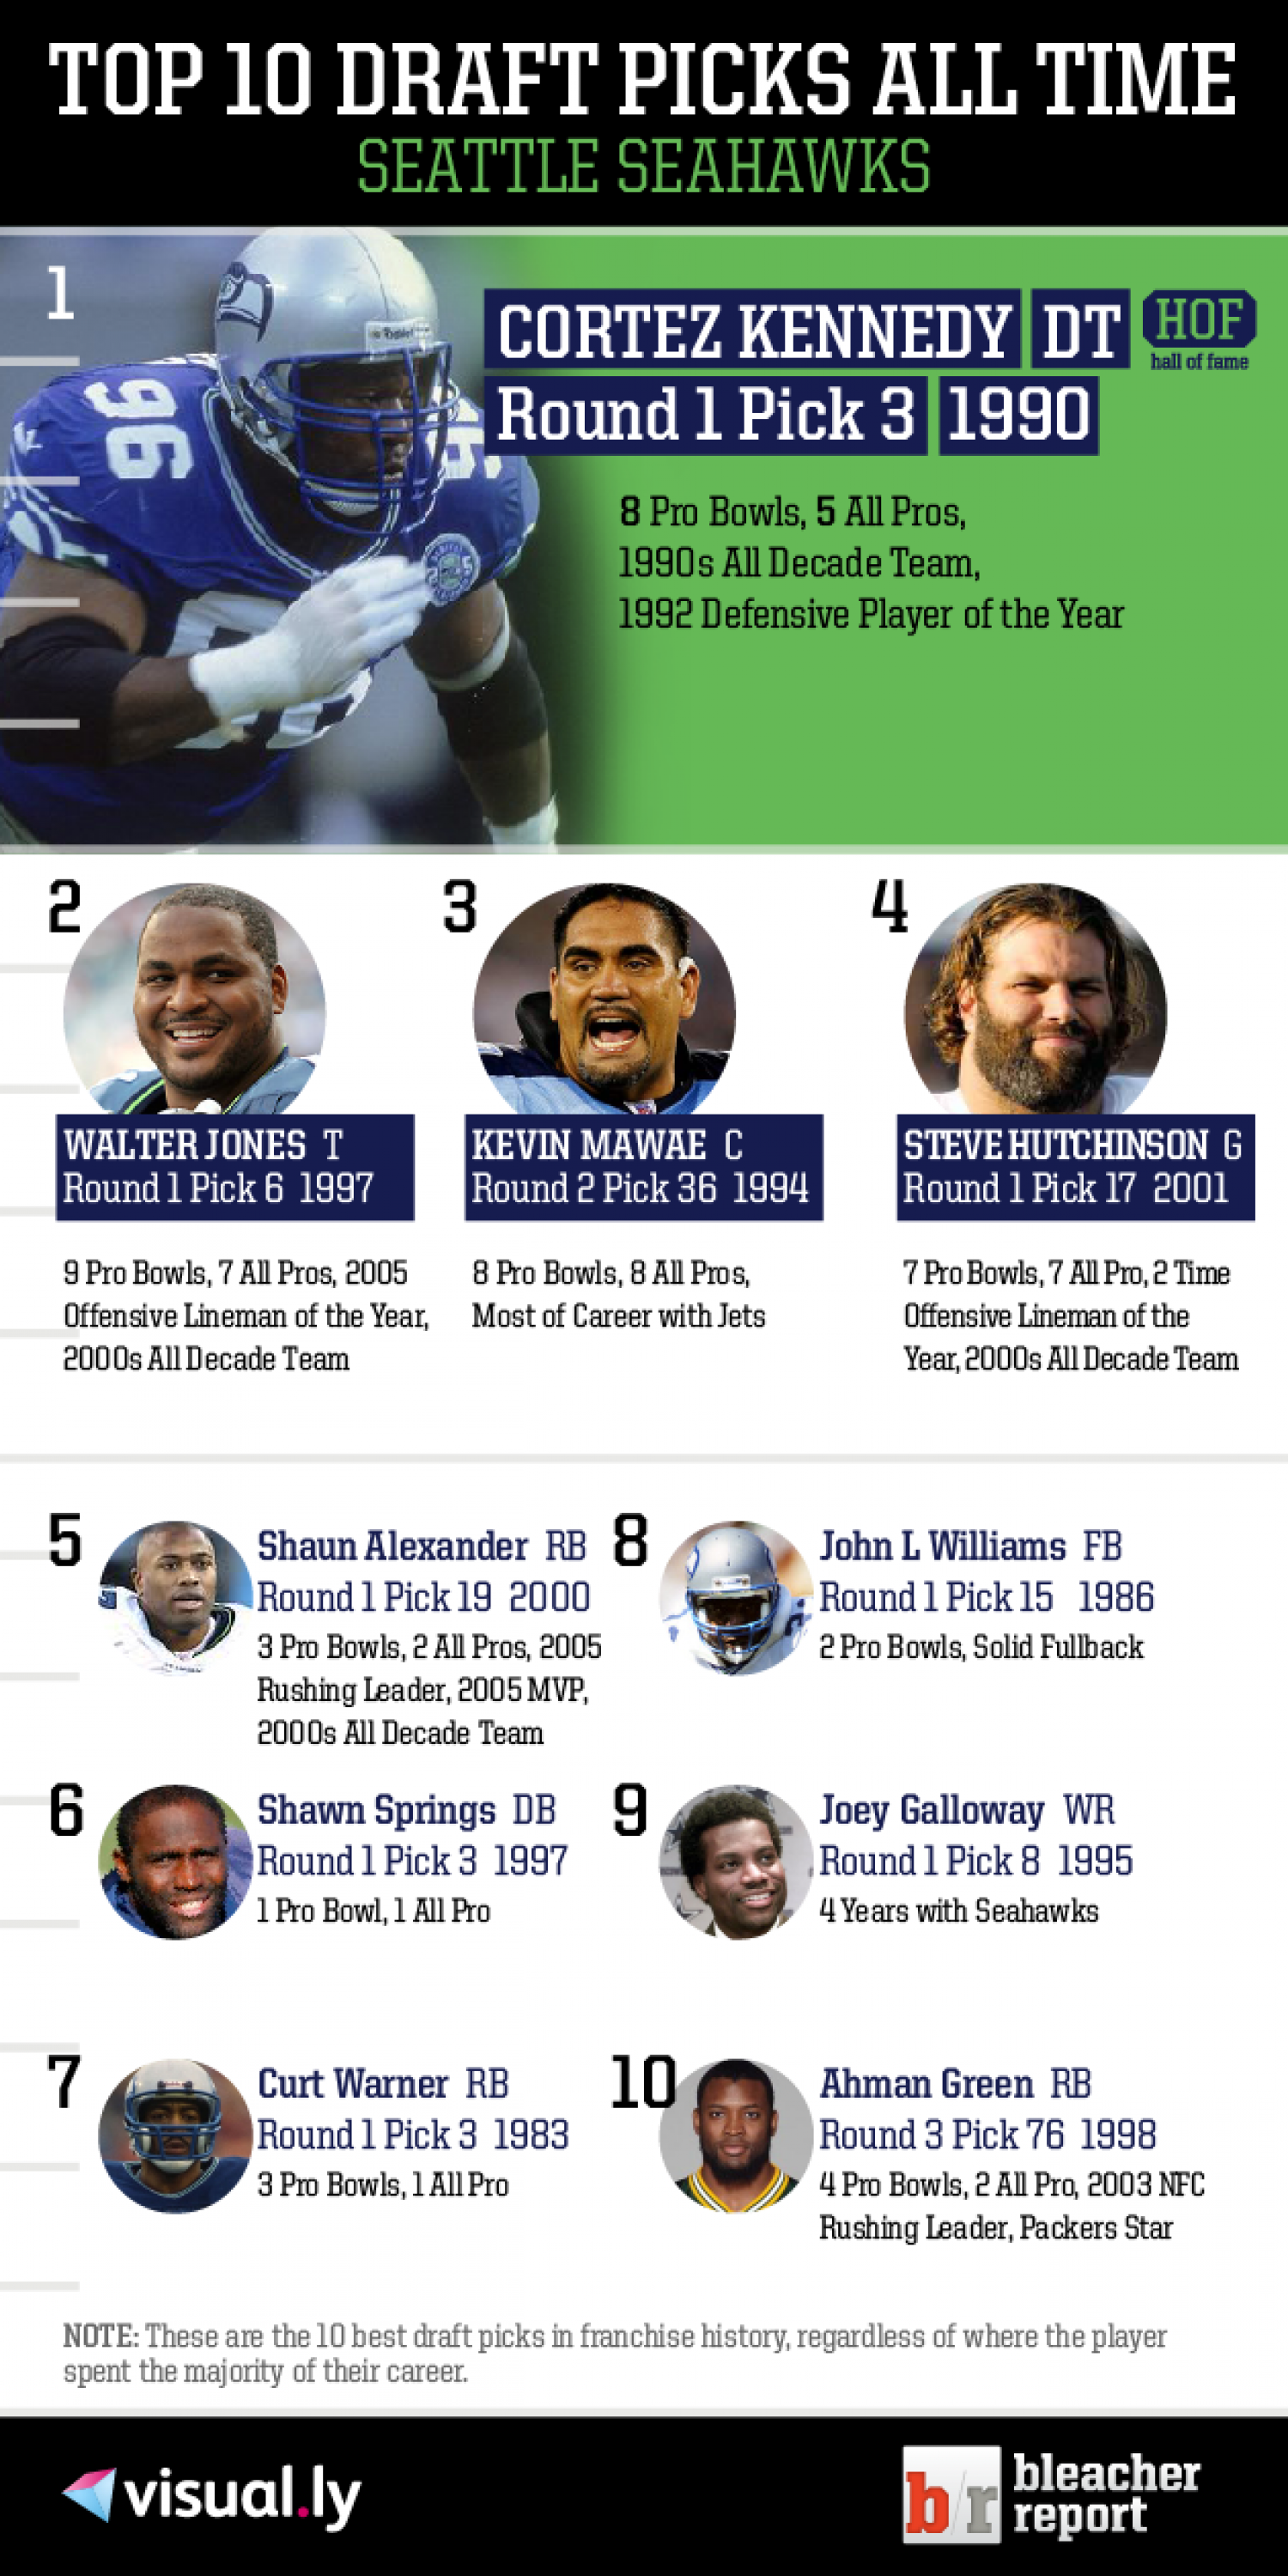 Top 10 Draft Picks of All Time: Seattle Seahawks Infographic